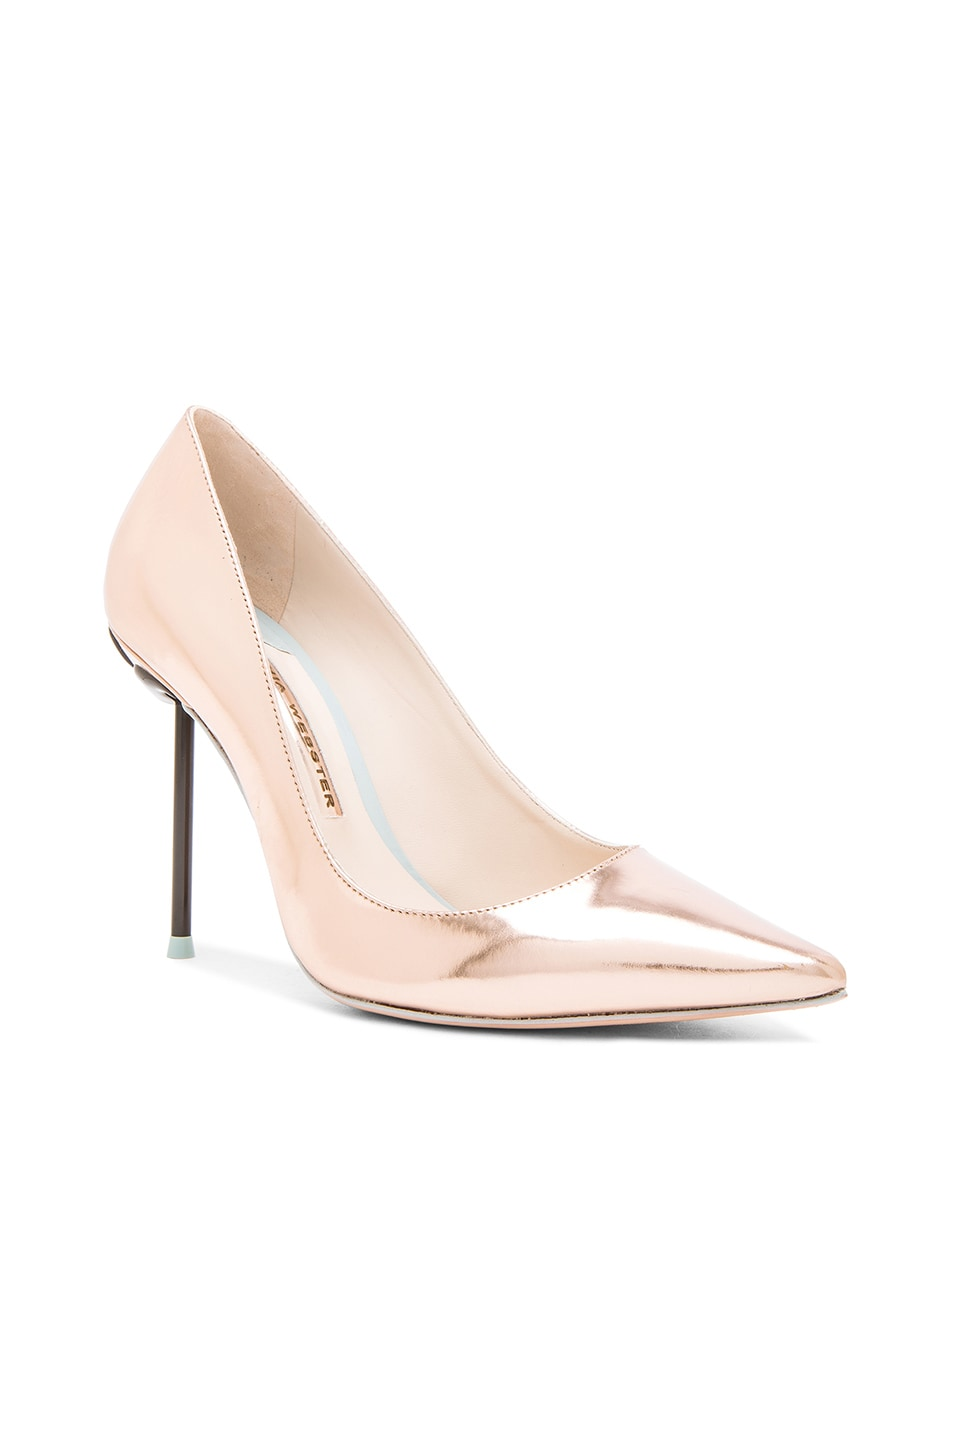 Image 2 of Sophia Webster Coco Flamingo Leather Heels in Rose Gold